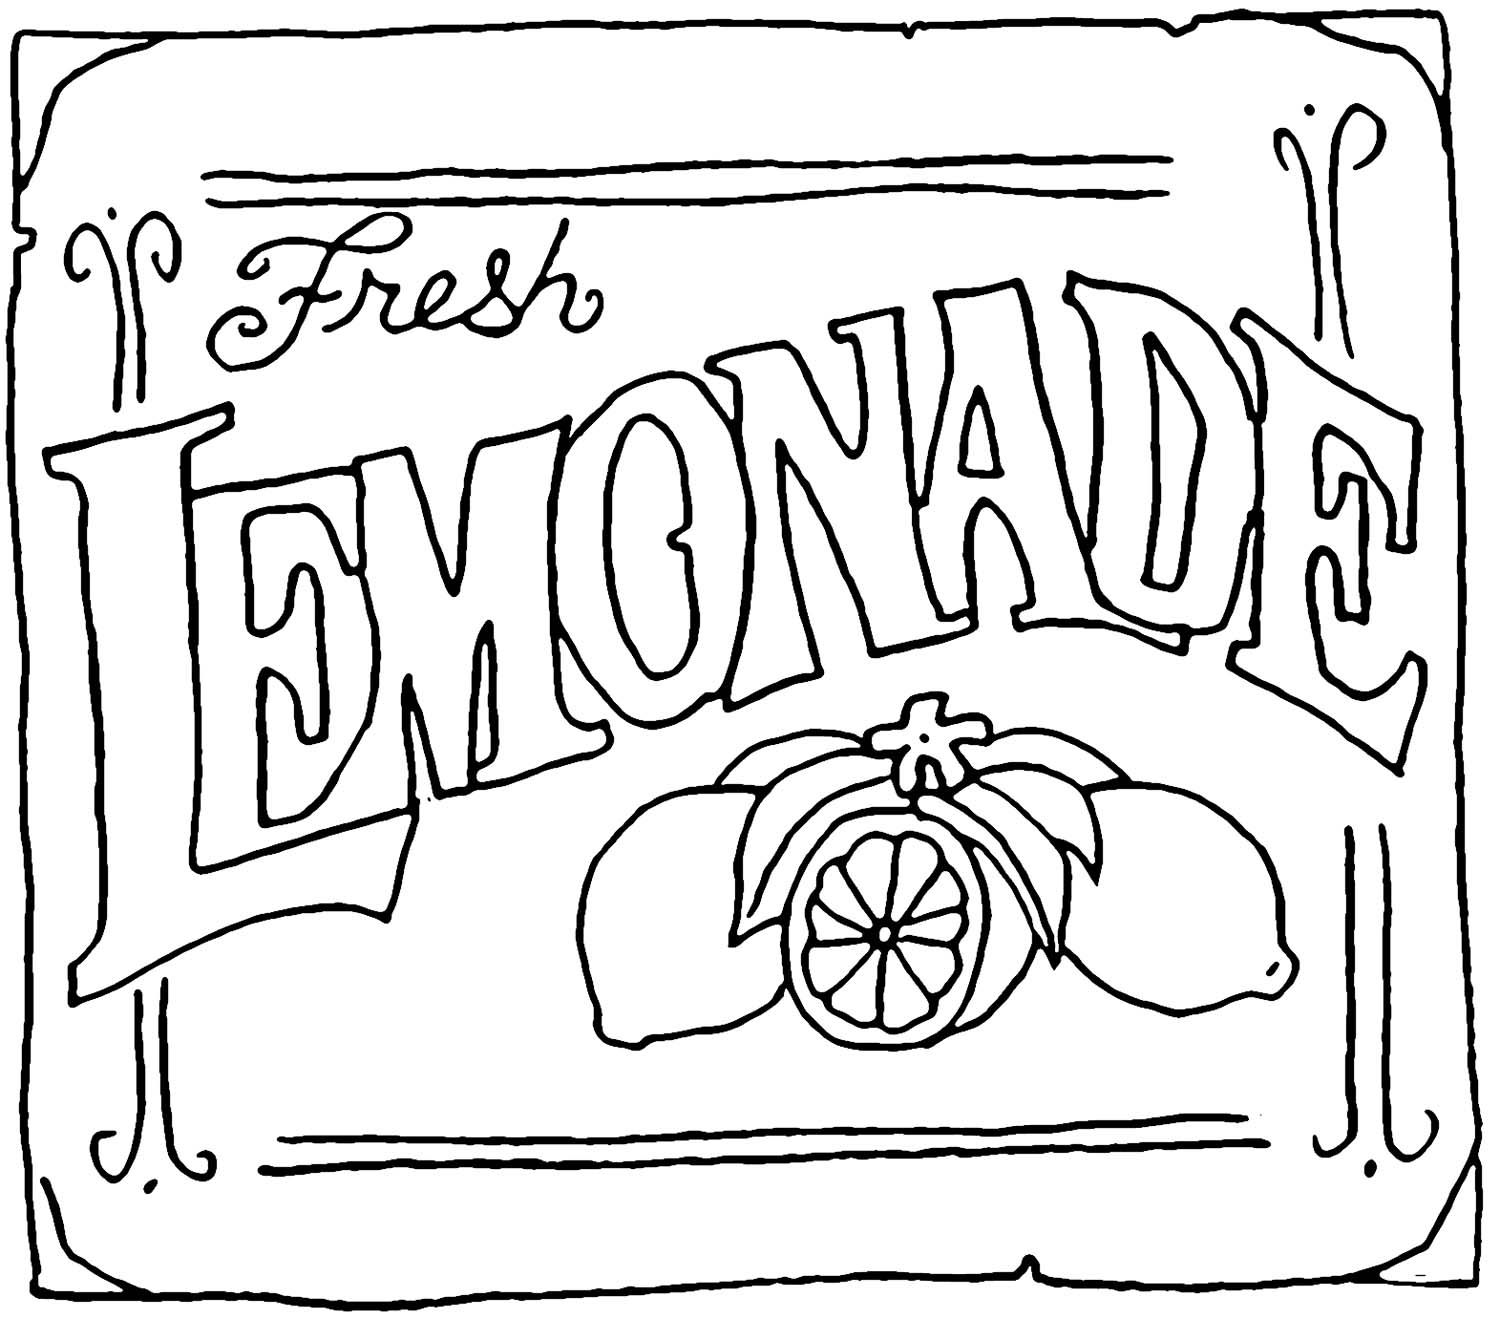 I love her digis. This one is free! | Lemonade sign ...